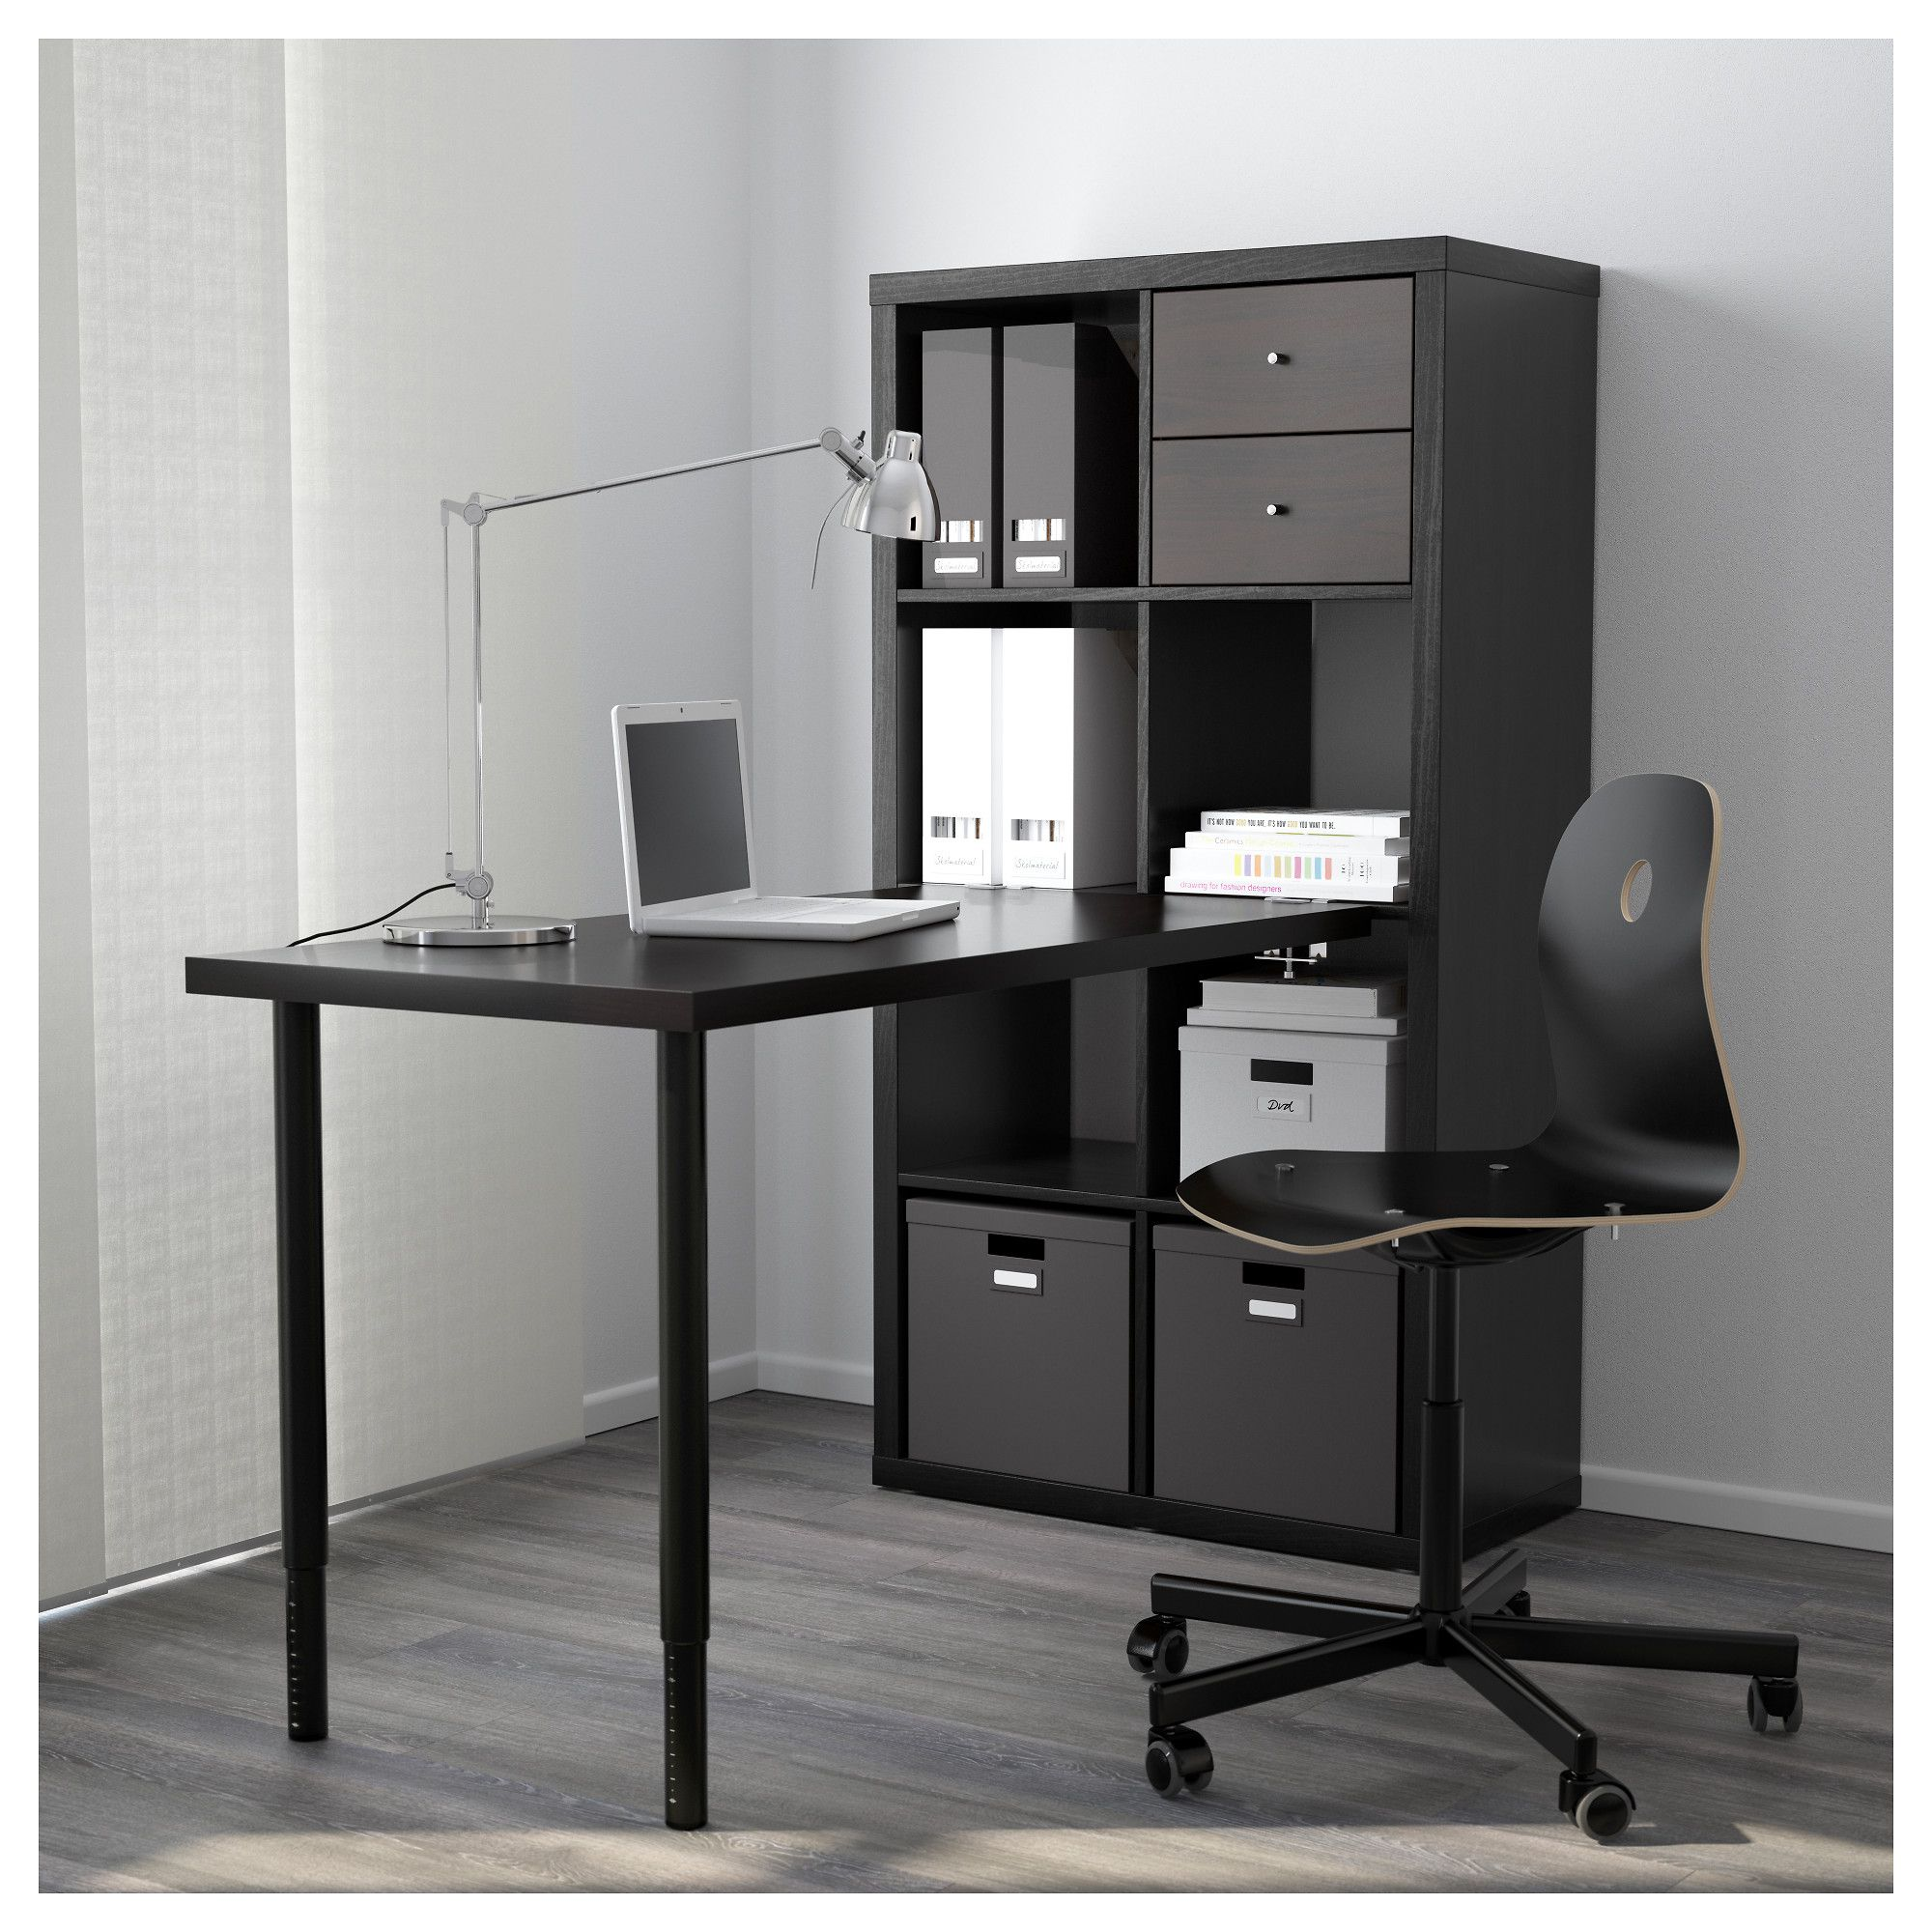 KALLAX Workstation, black-brown